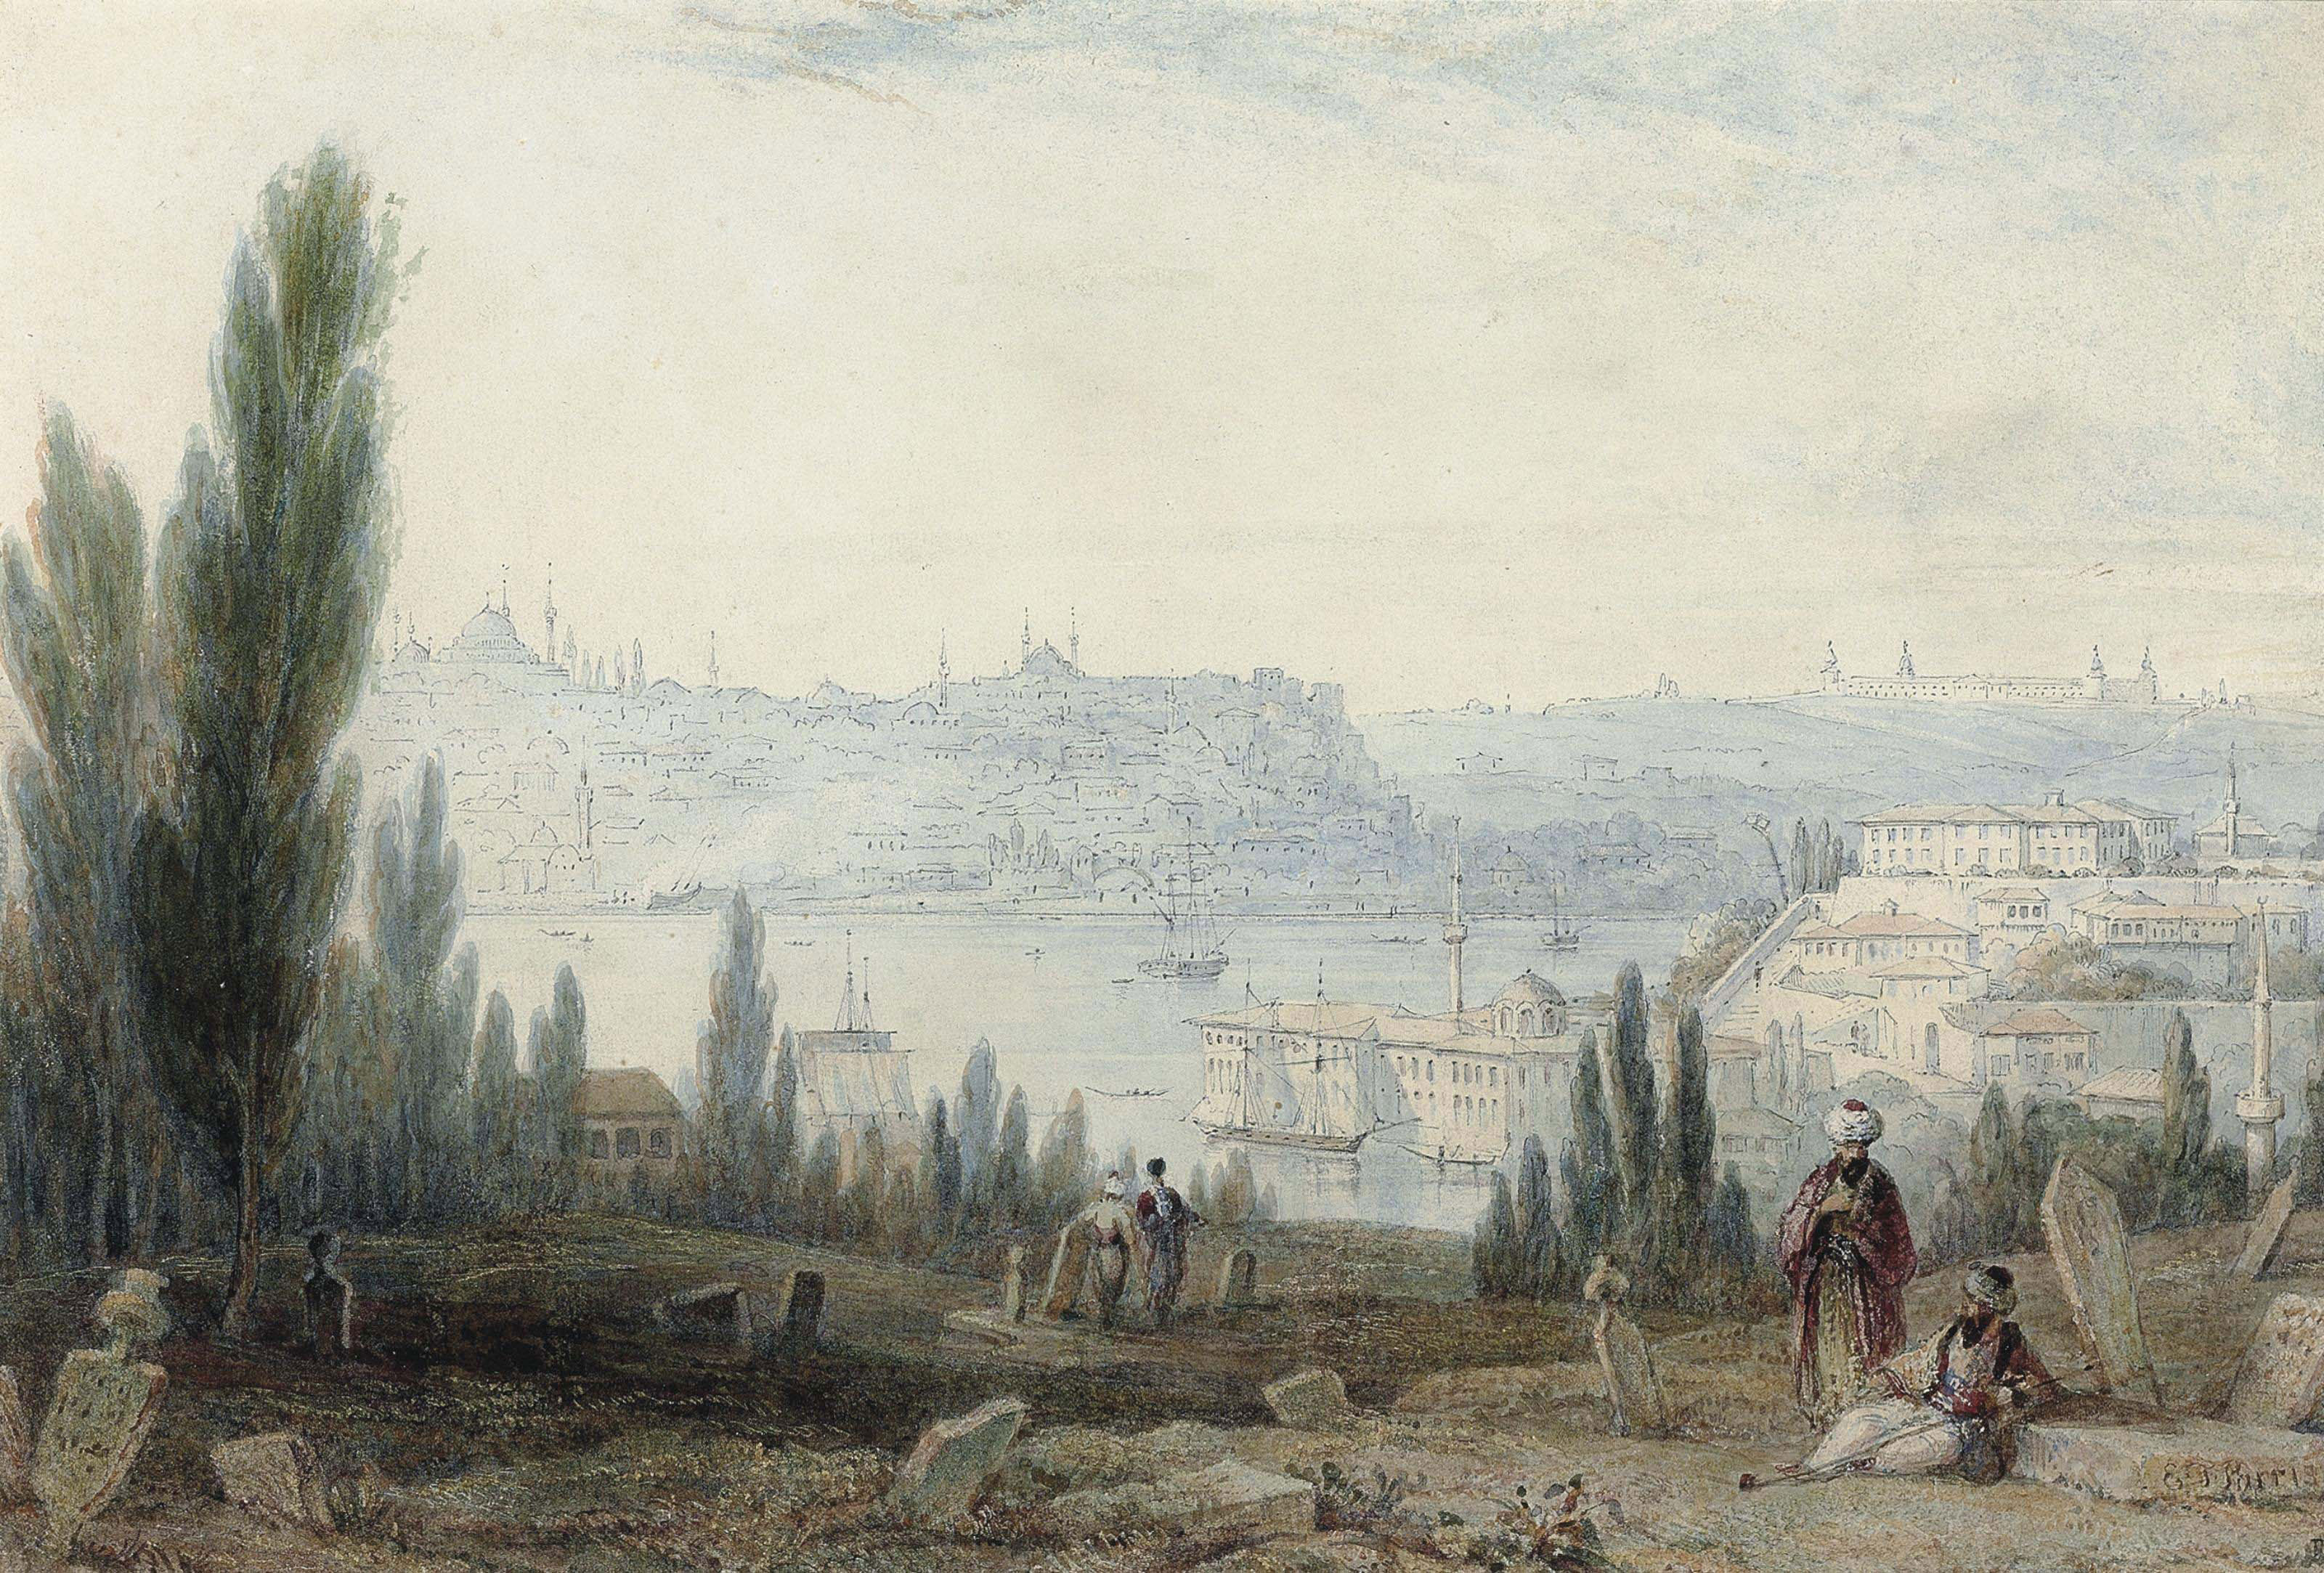 Figures resting in the Turkish cemetary, Ayoub, the city of Constantinople and the Bosphorus beyond